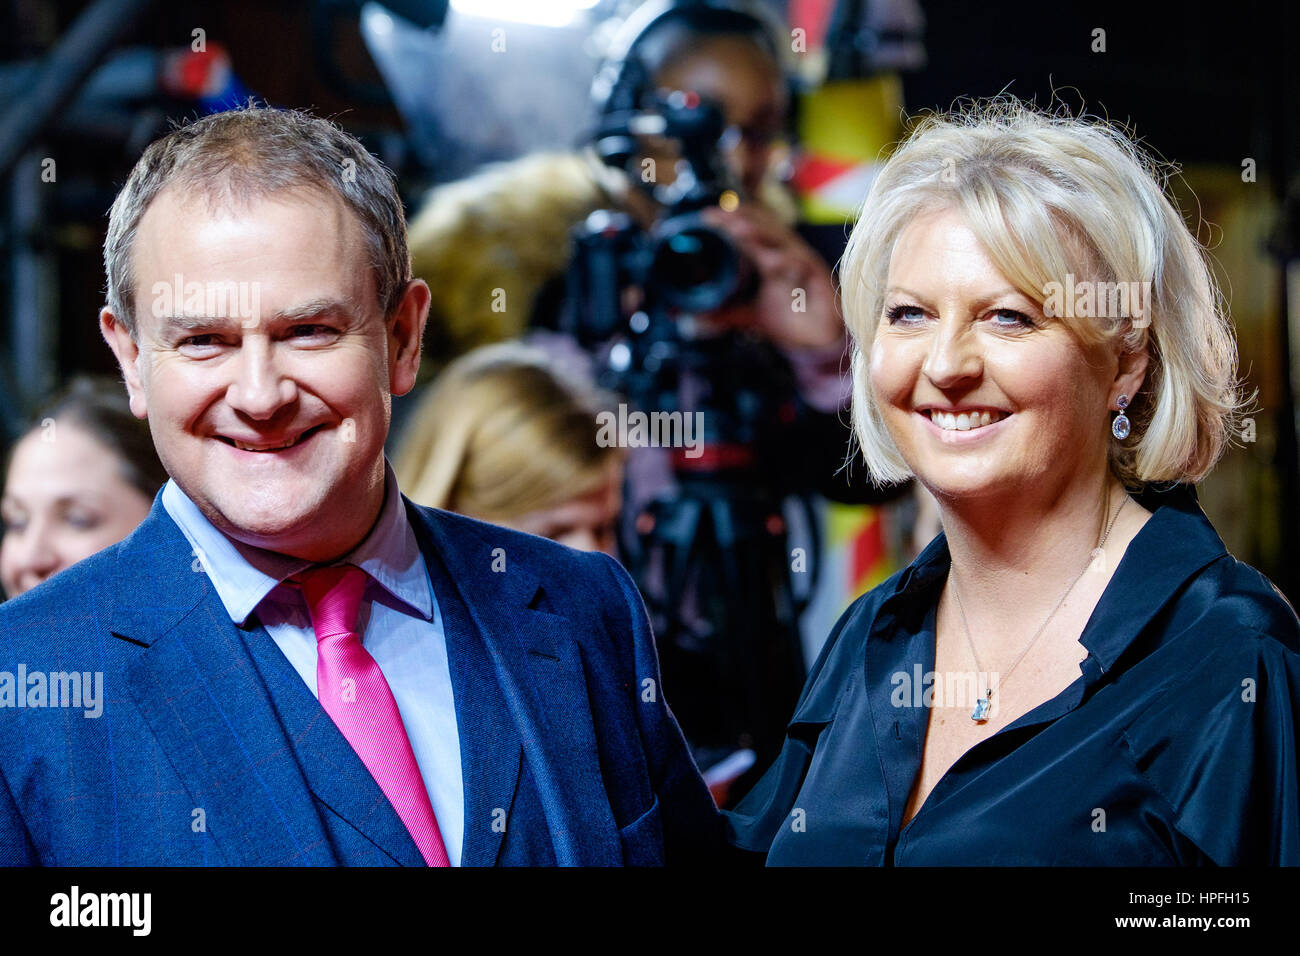 London, UK. 21st February, 2017. Hugh Bonneville and wife Lulu Williams attends the UK Premiere if VICEROY'S - Stock Image